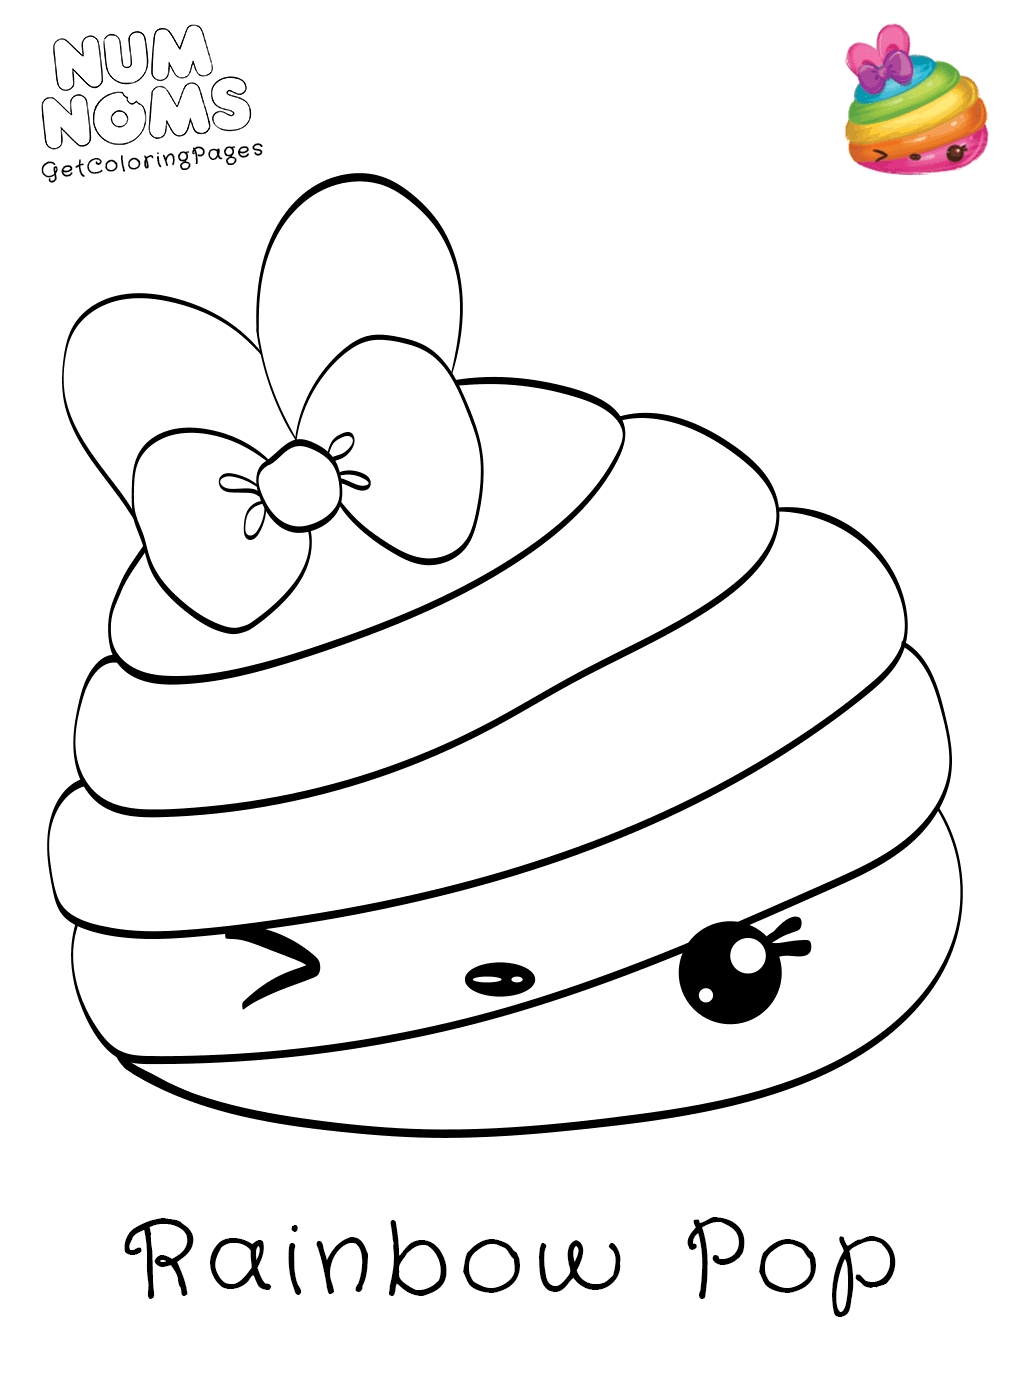 Num Noms Coloring Pages Coloring Pages